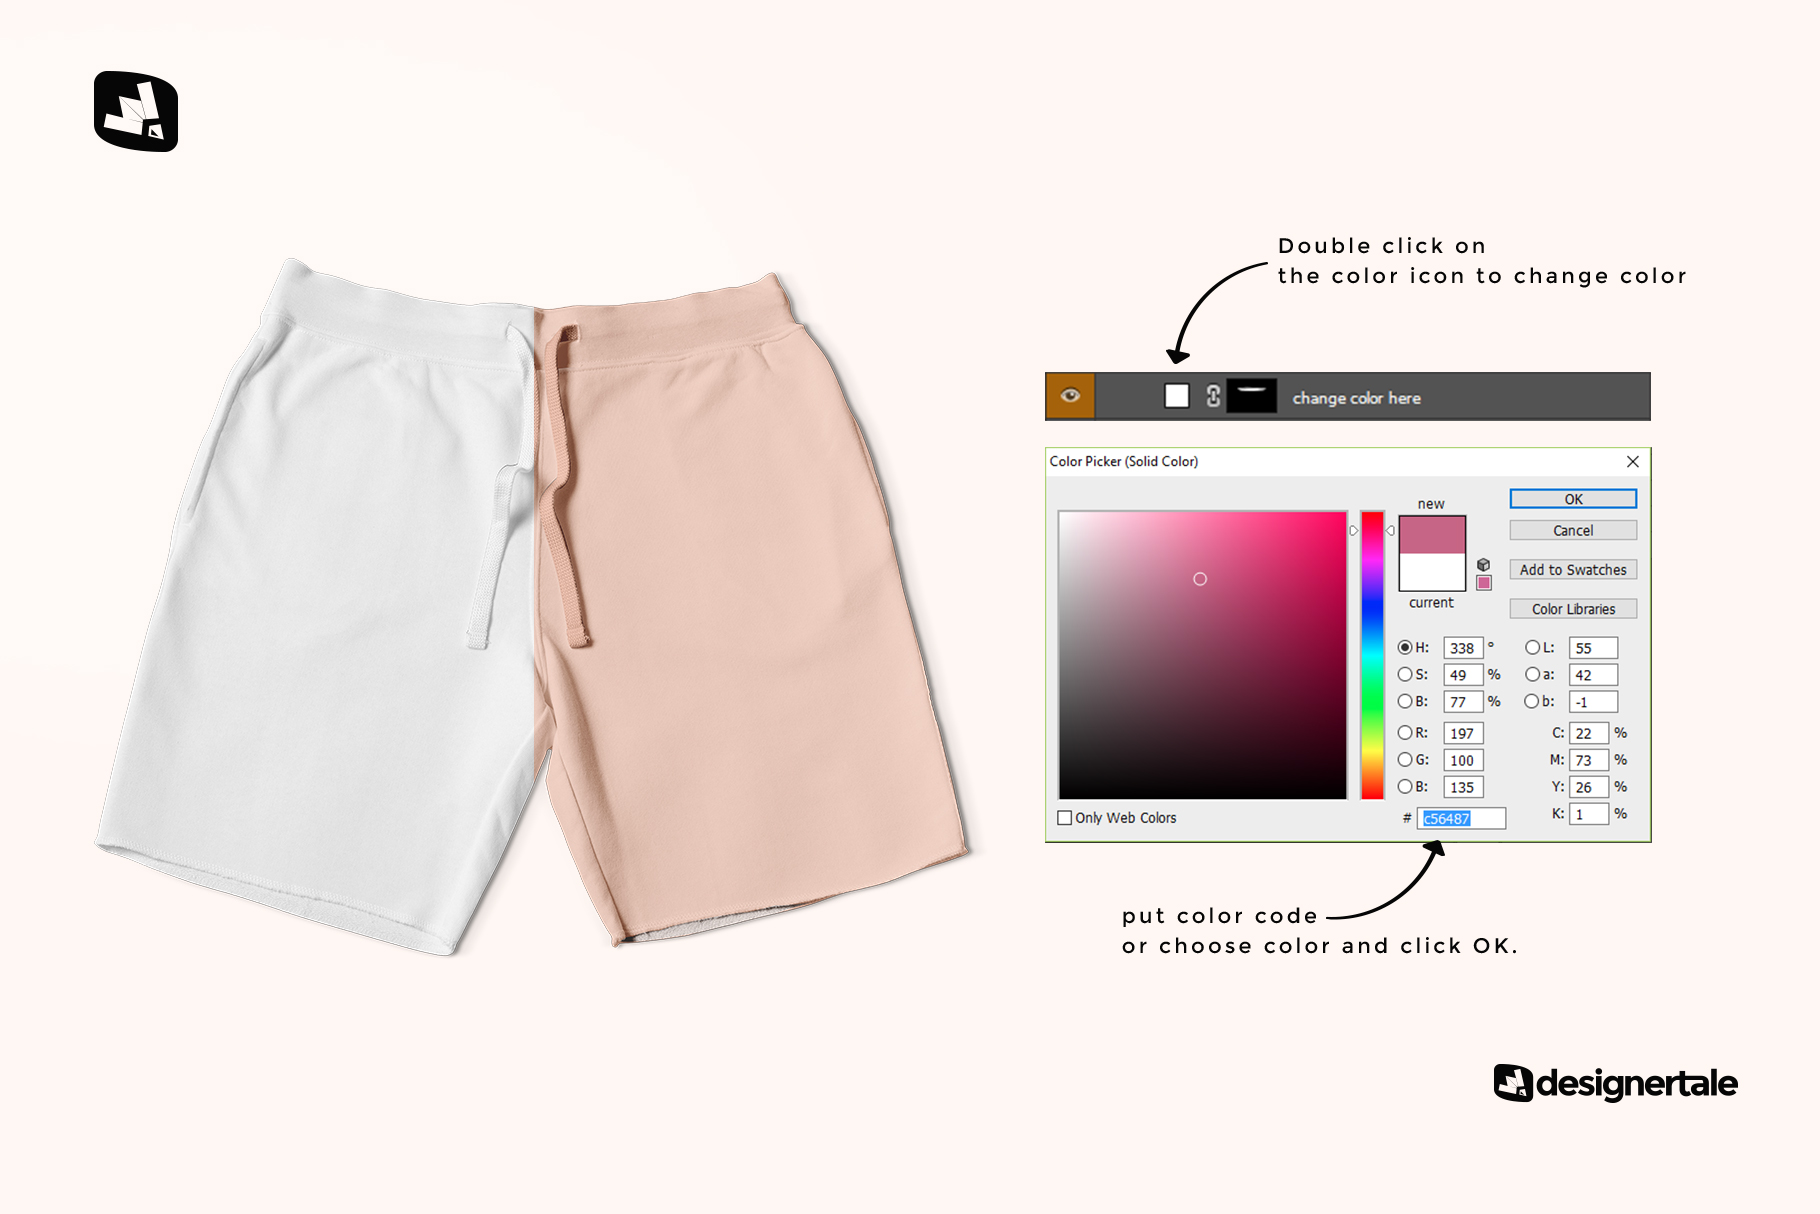 how to change color of the top view cotton shorts mockup